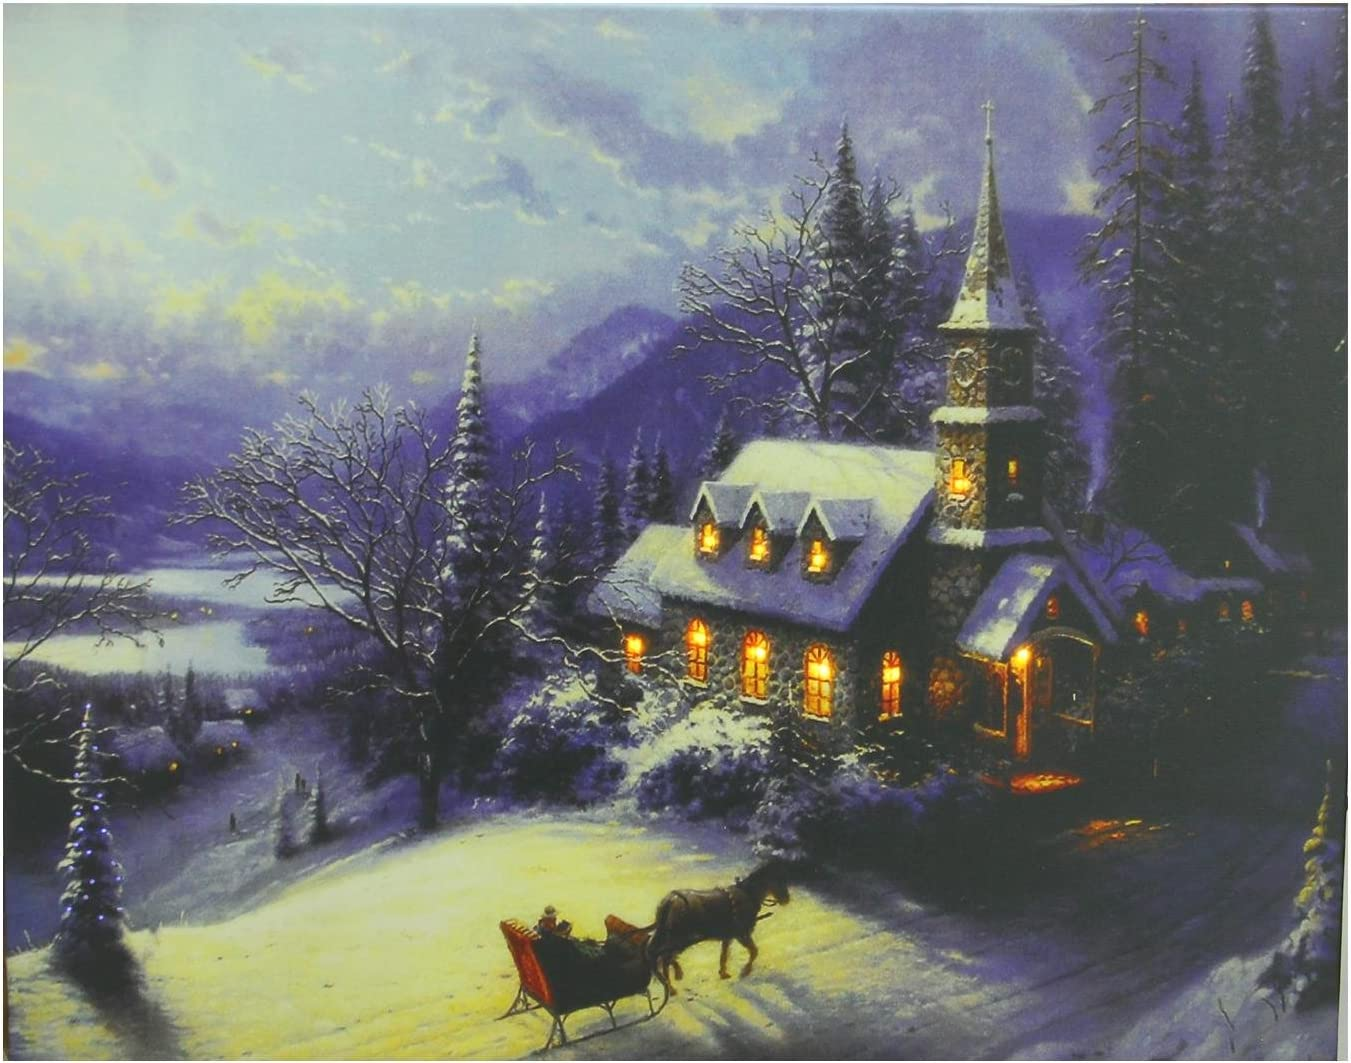 Northlight Led Lighted Church In Wintry Woods Canvas Wall Art 15 75 X 19 75 Amazon Co Uk Kitchen Home